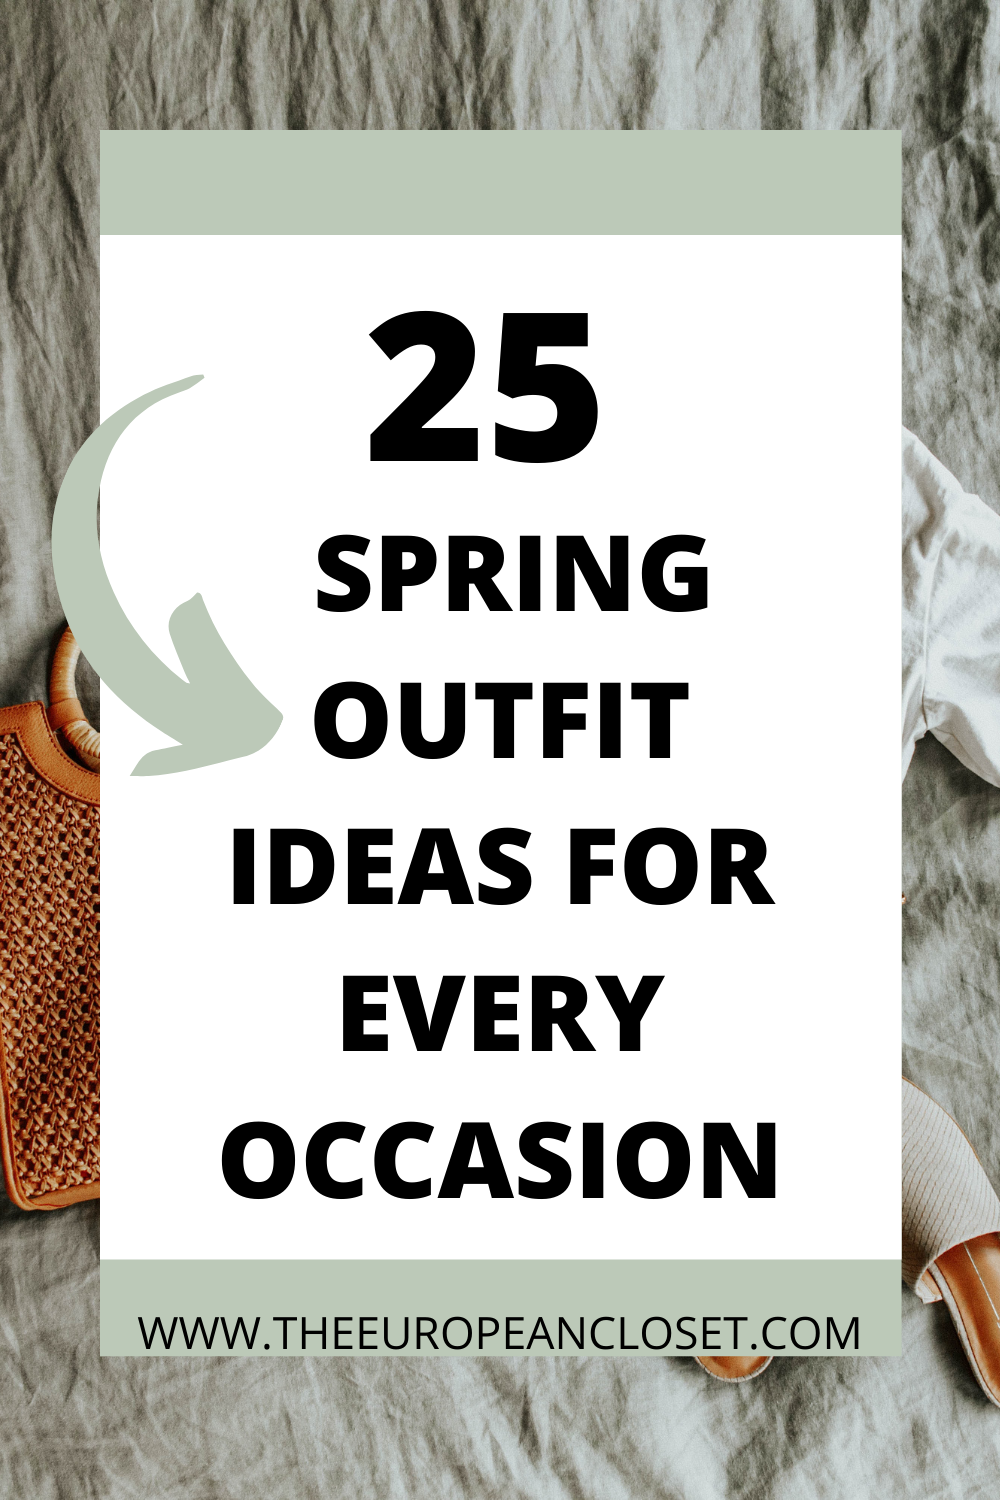 Today, I bring you 25 (you read that right, twenty-five!) early spring outfit ideas. They were created to fi any occasions you might attend.